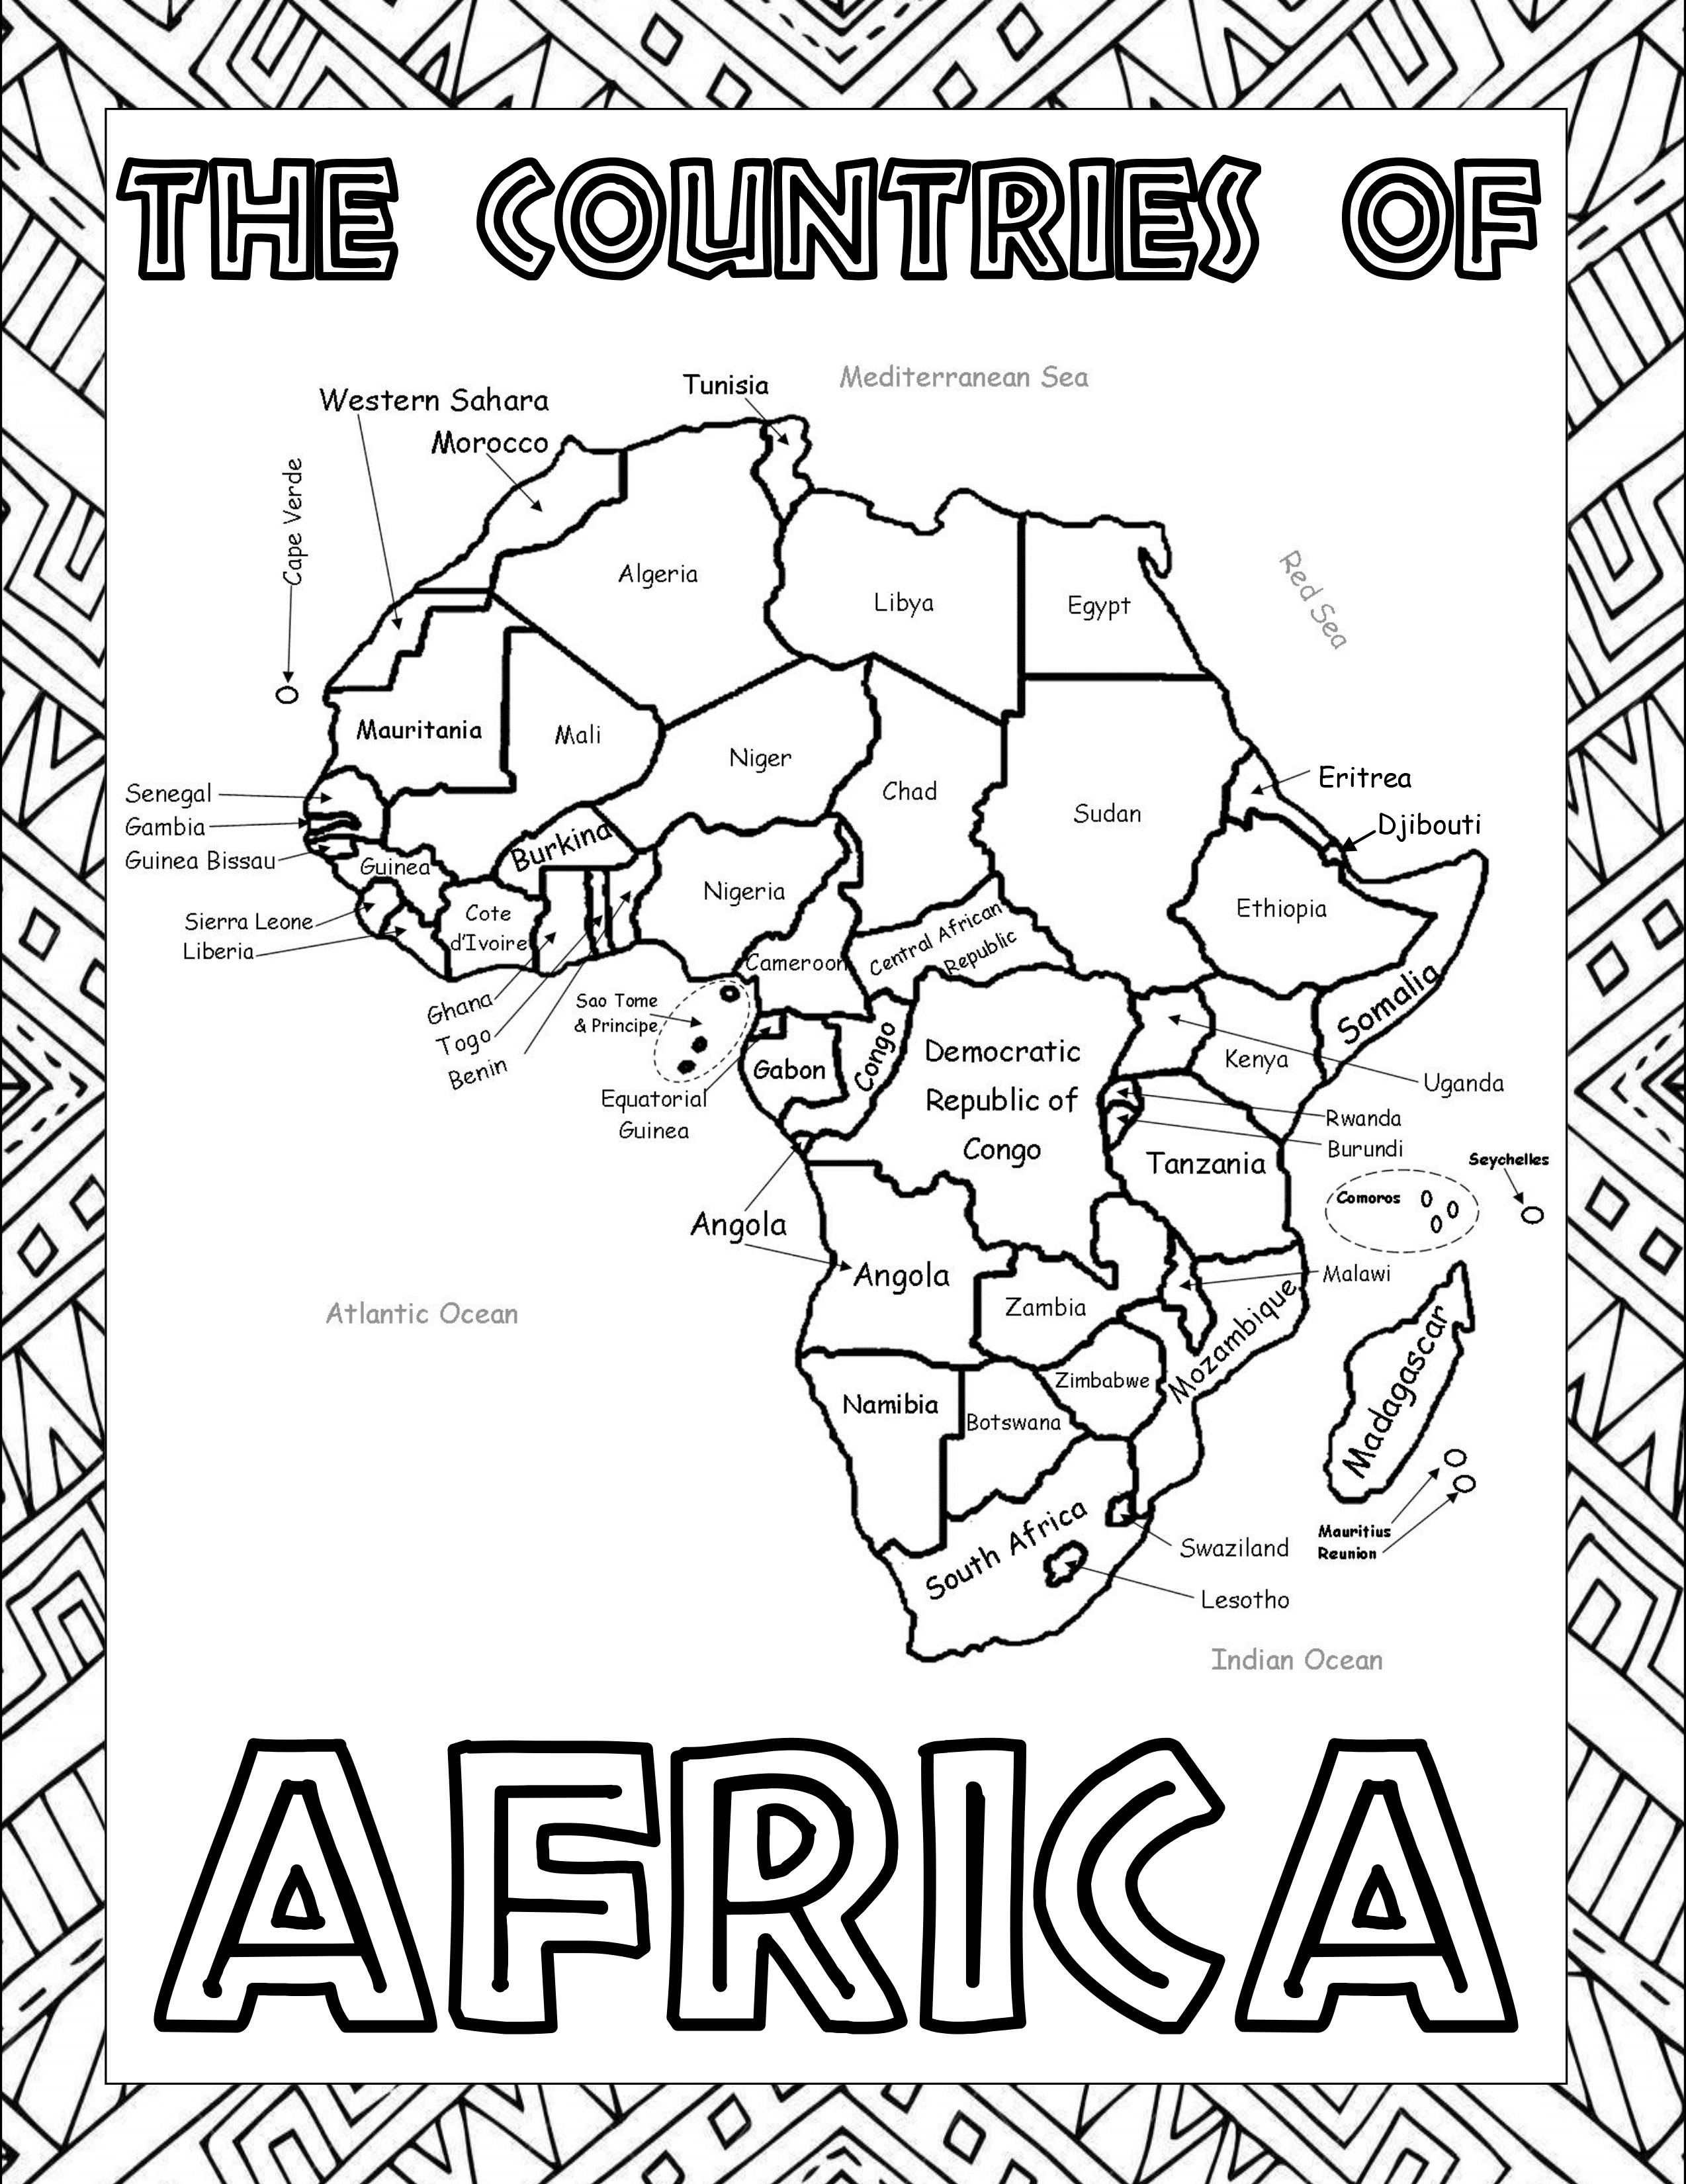 Africa A Geography Amp Intercessory Prayer Curriculum